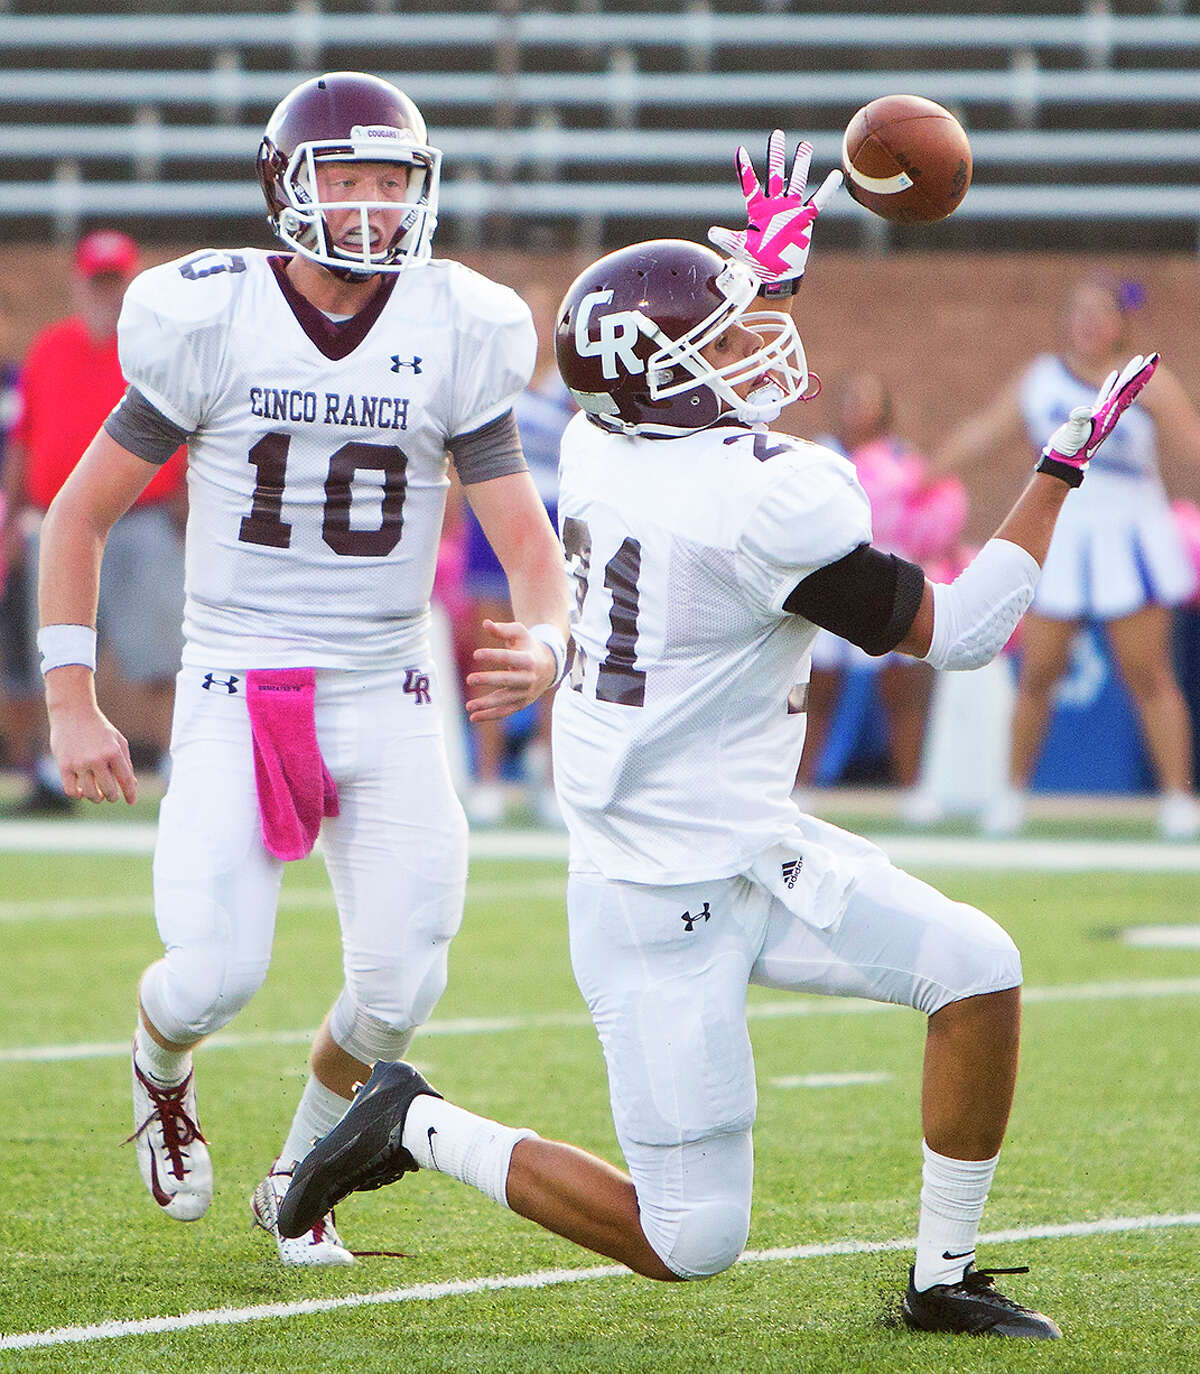 Cinco Ranch running back Jonathan Lugo bobbles a pass from quarterback Russell Morrison, left, during the first half of a football game against Morton Ranch High School at Rhodes Stadium, Thursday, Oct. 2, 2014, in Katy.